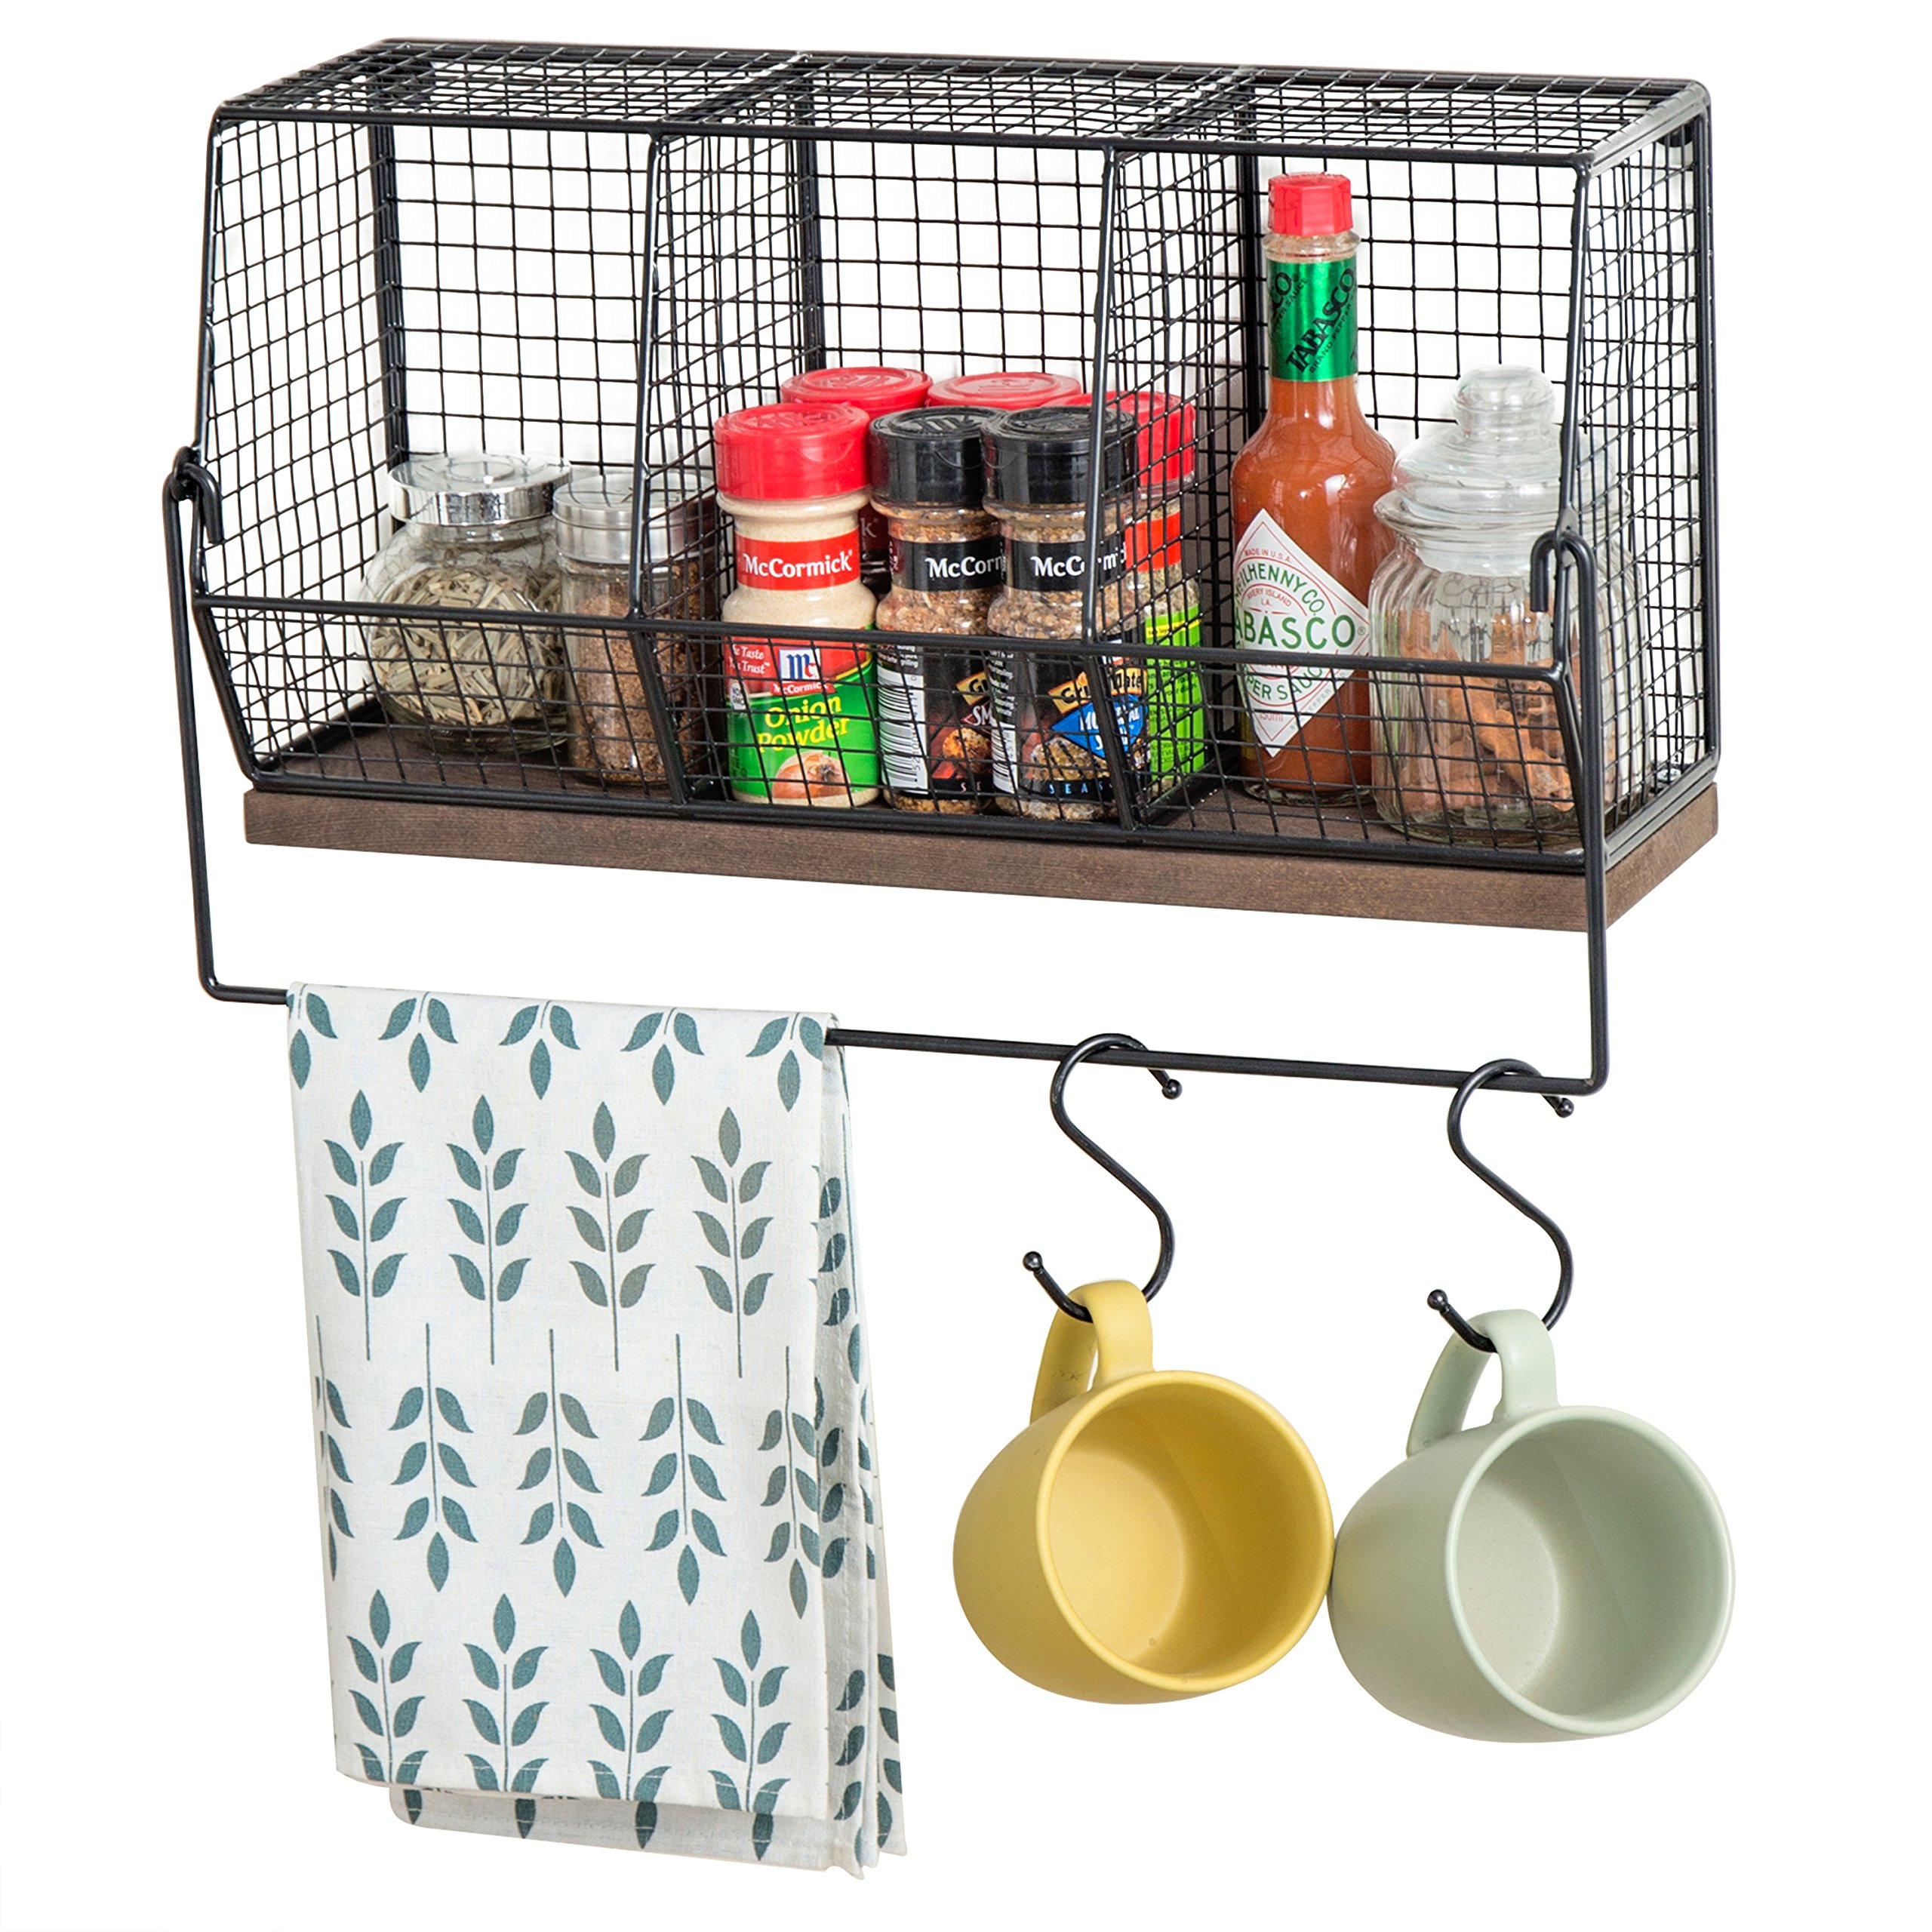 MyGift Chicken Wire Wall-Mounted Spice Rack with Towel Bar & 4 S-Hooks